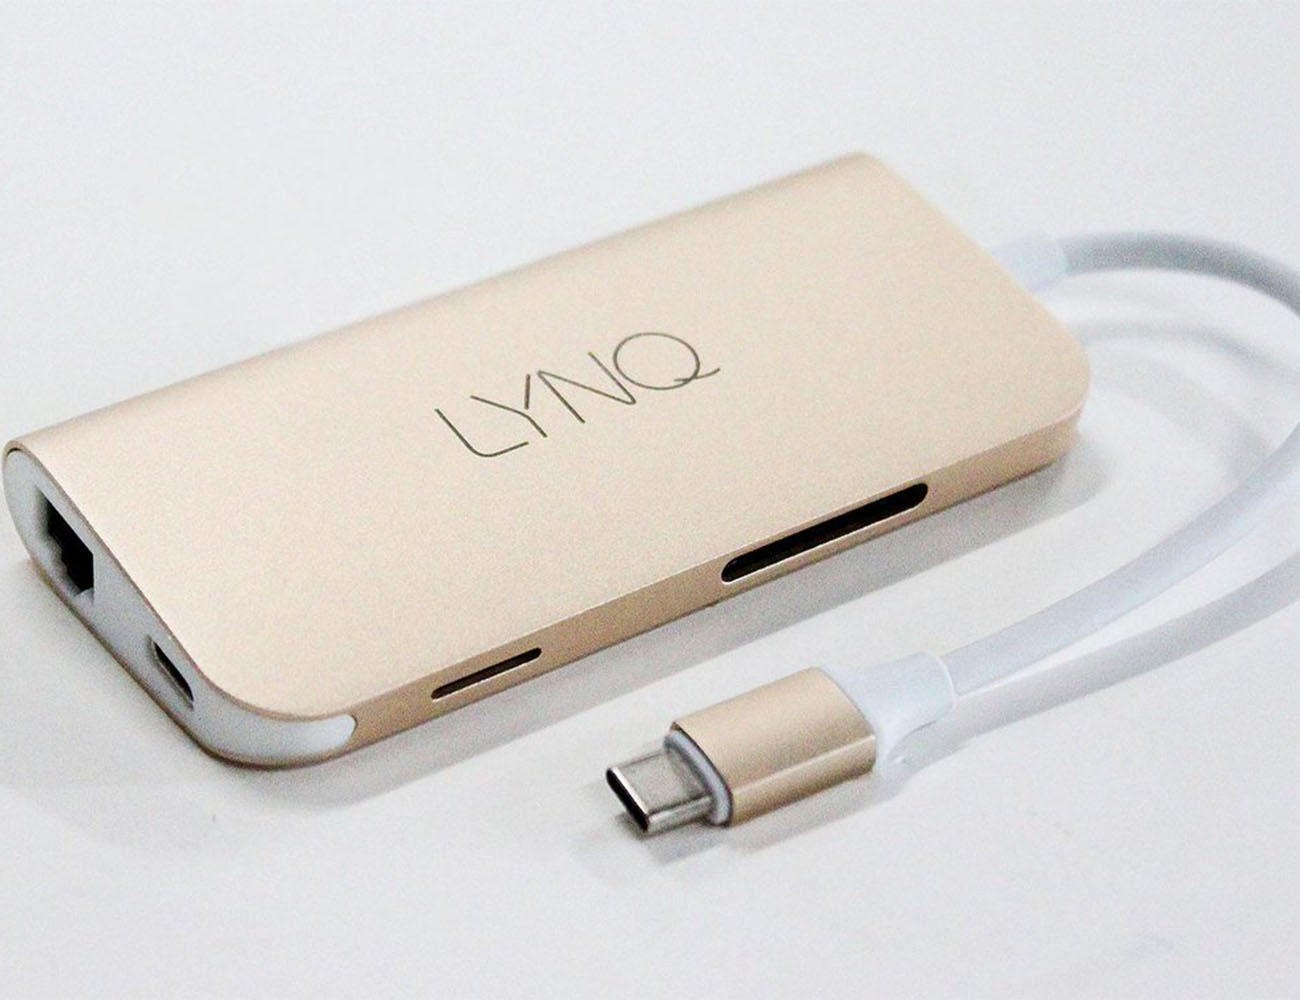 LYNQ – More Ports For Your Macbook